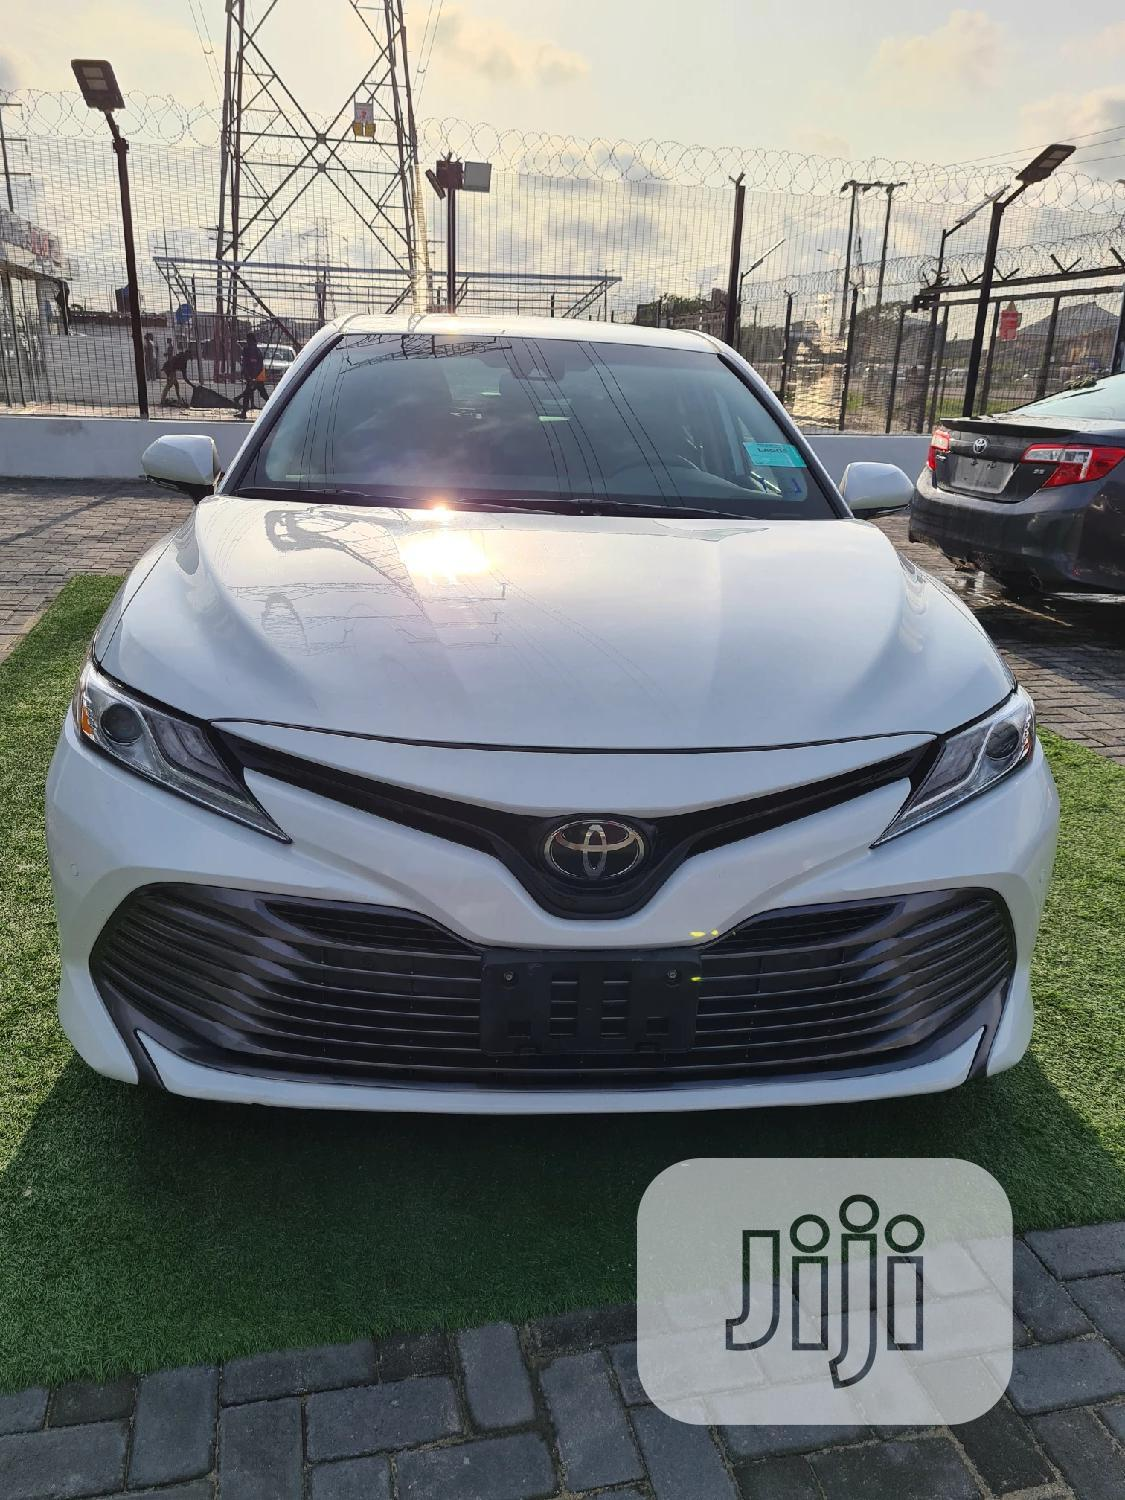 Toyota Camry 2018 XSE FWD (2.5L 4cyl 8AM) White